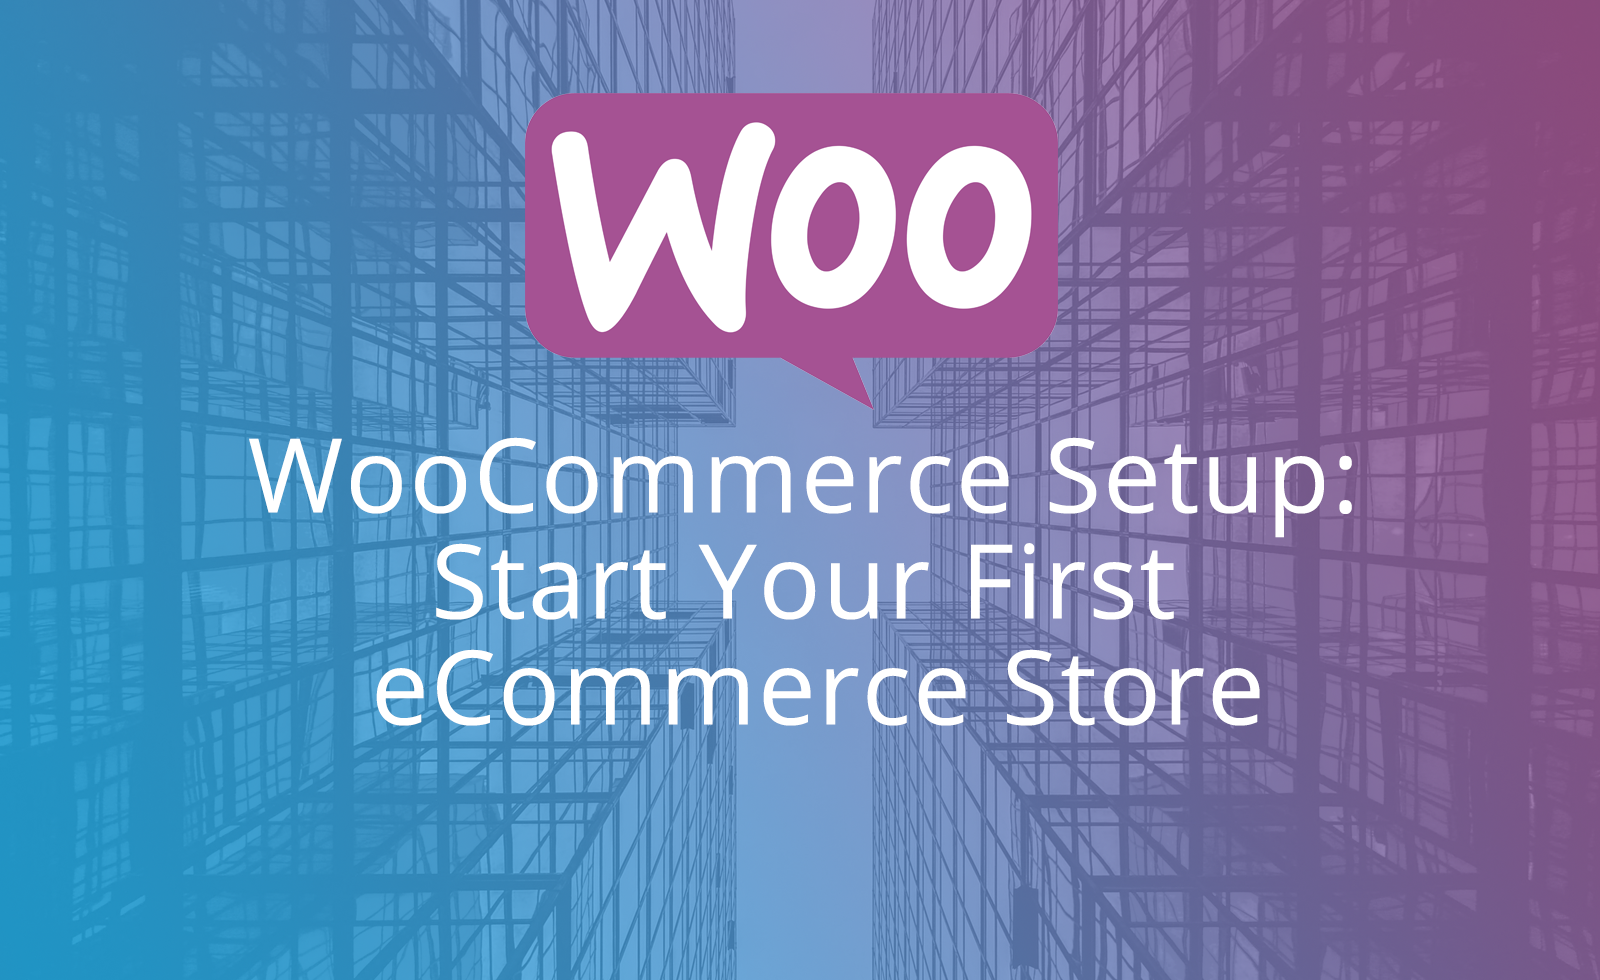 Start Your First eCommerce Store